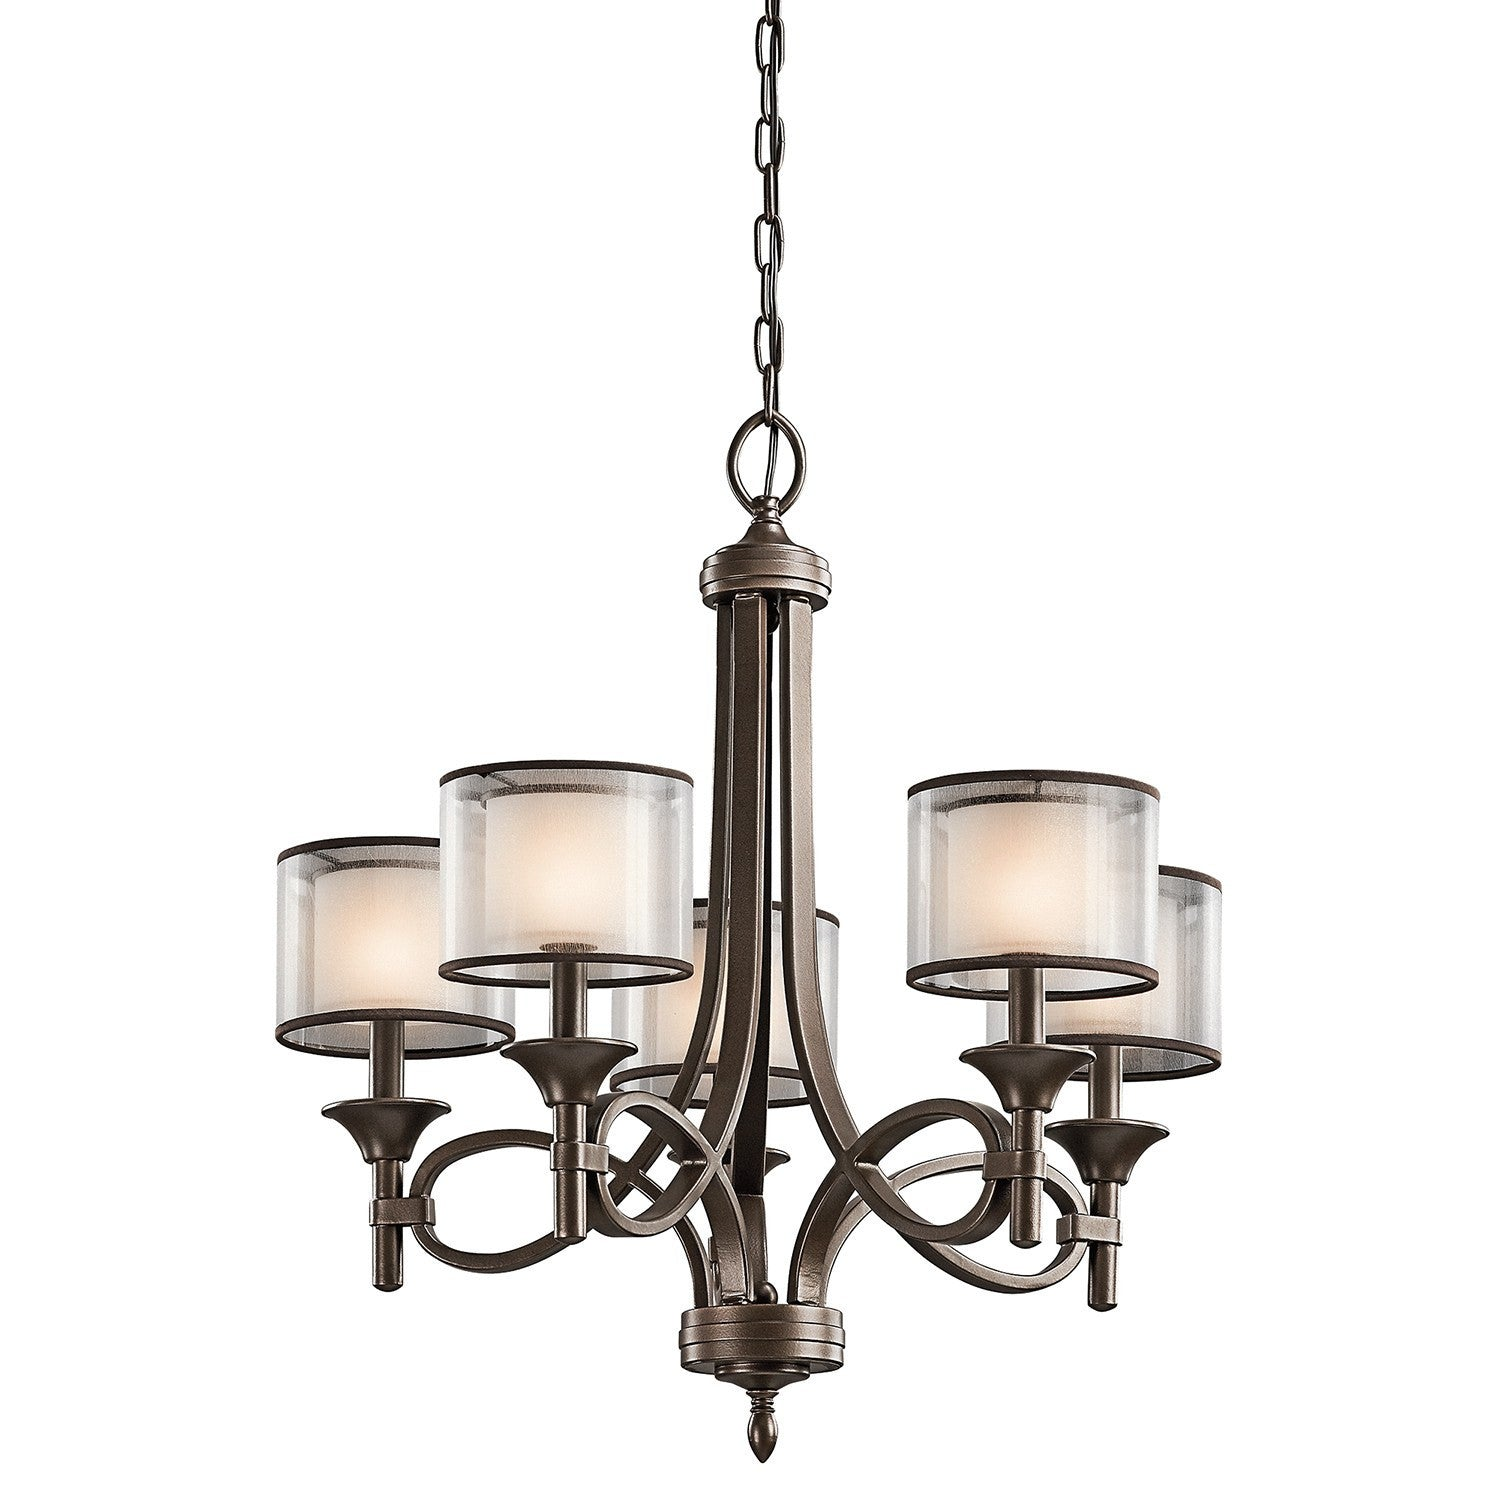 Kichler lacey 5 light chandelier london lighting kichler lacey 5 light chandelier london lighting 1 aloadofball Choice Image